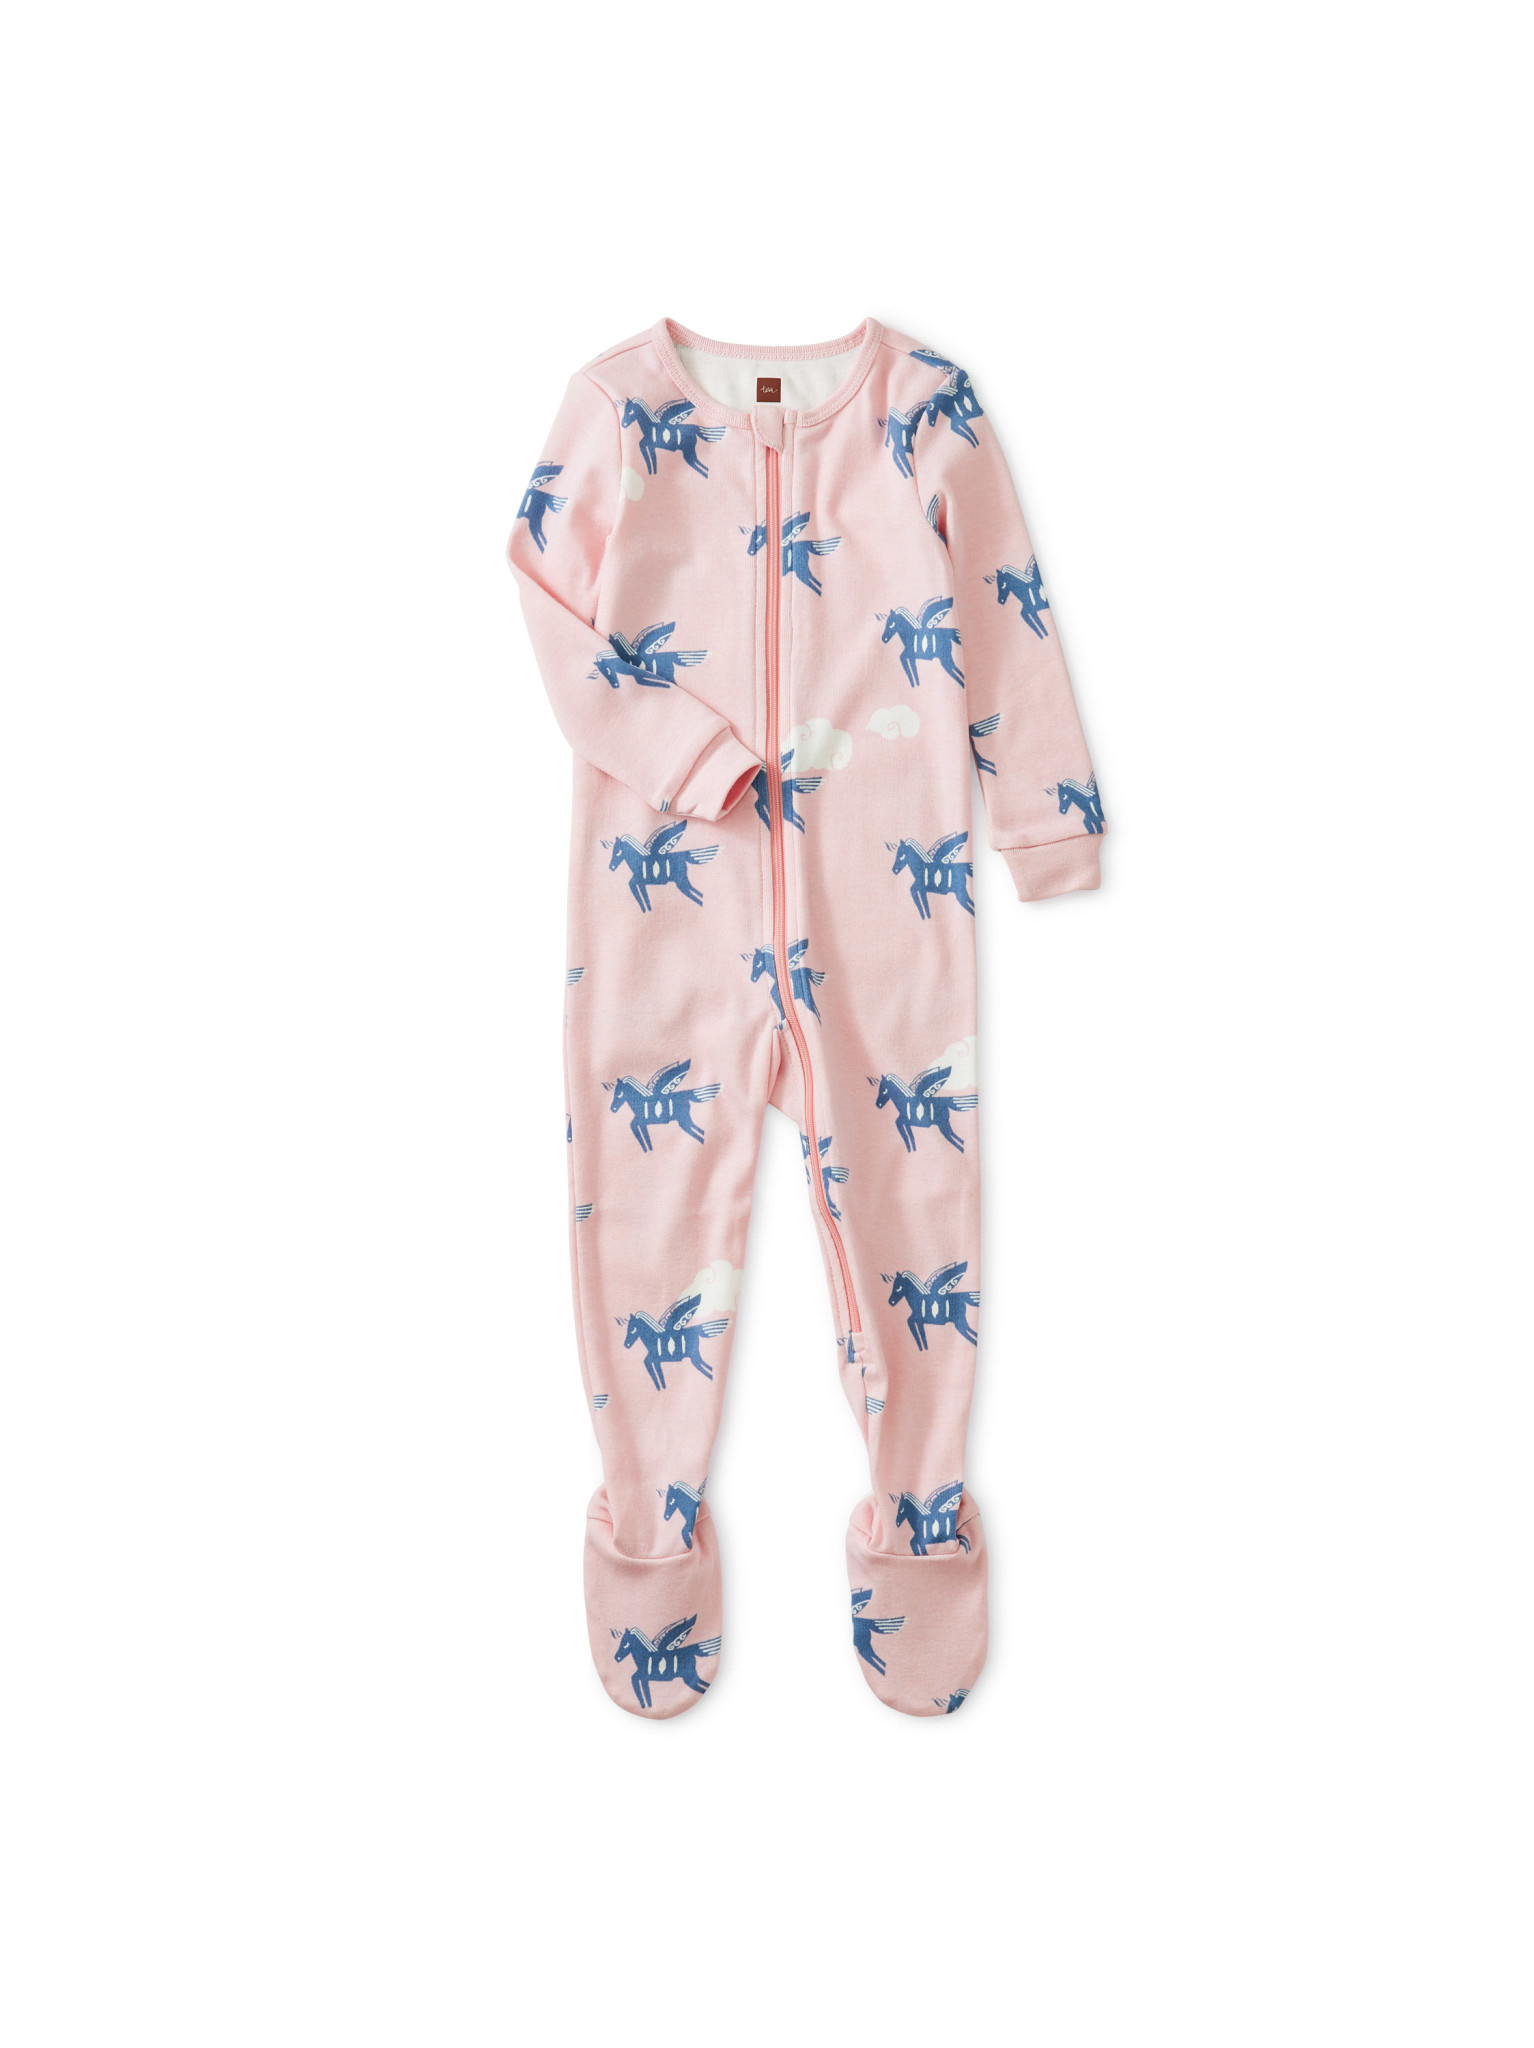 Tea Collection Lungta Winhorse Footie Pajamas